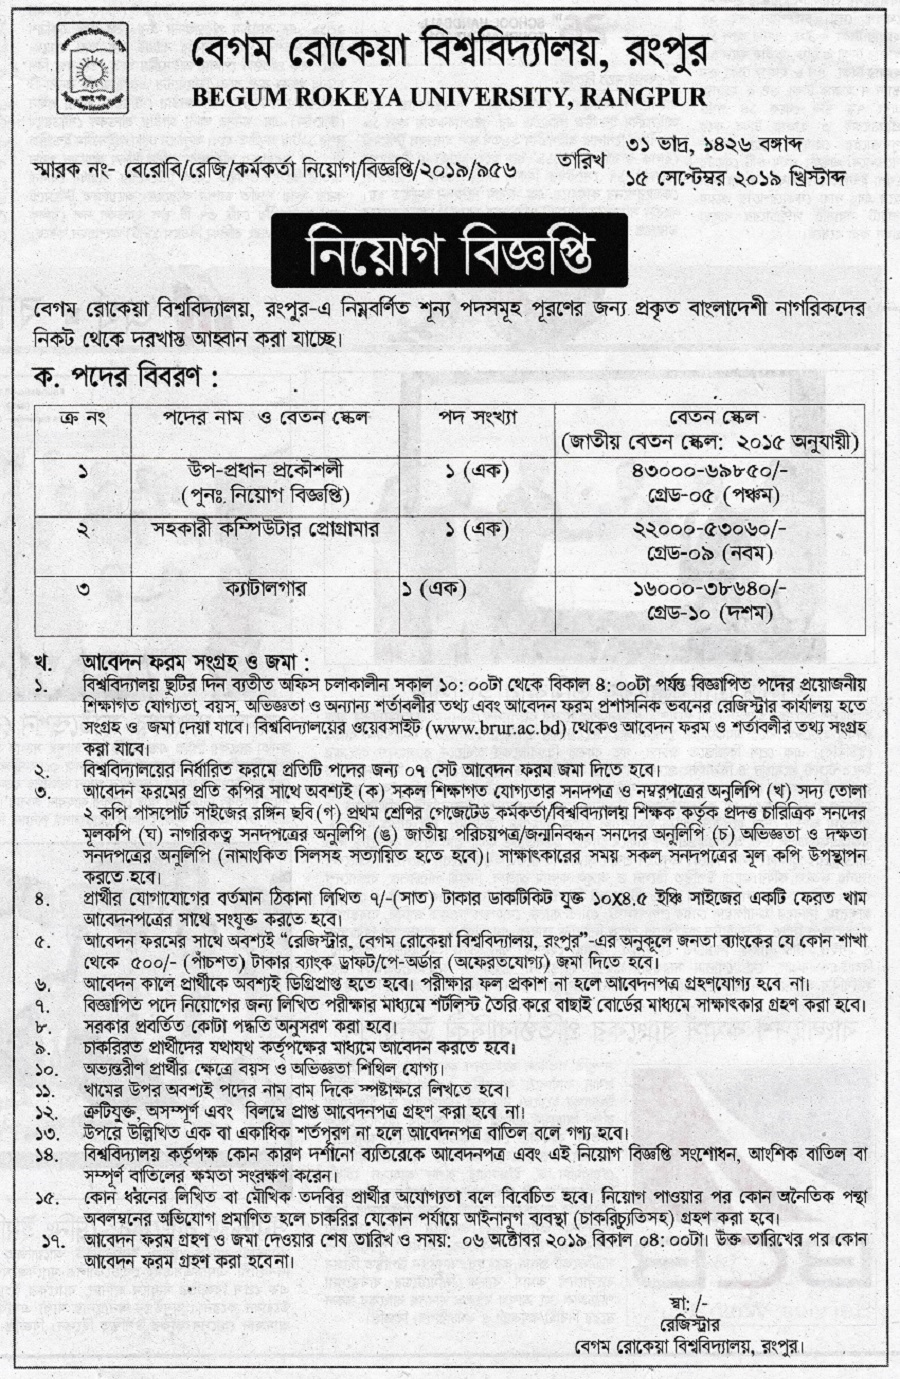 Begum Rokeya University Job Circular 2019